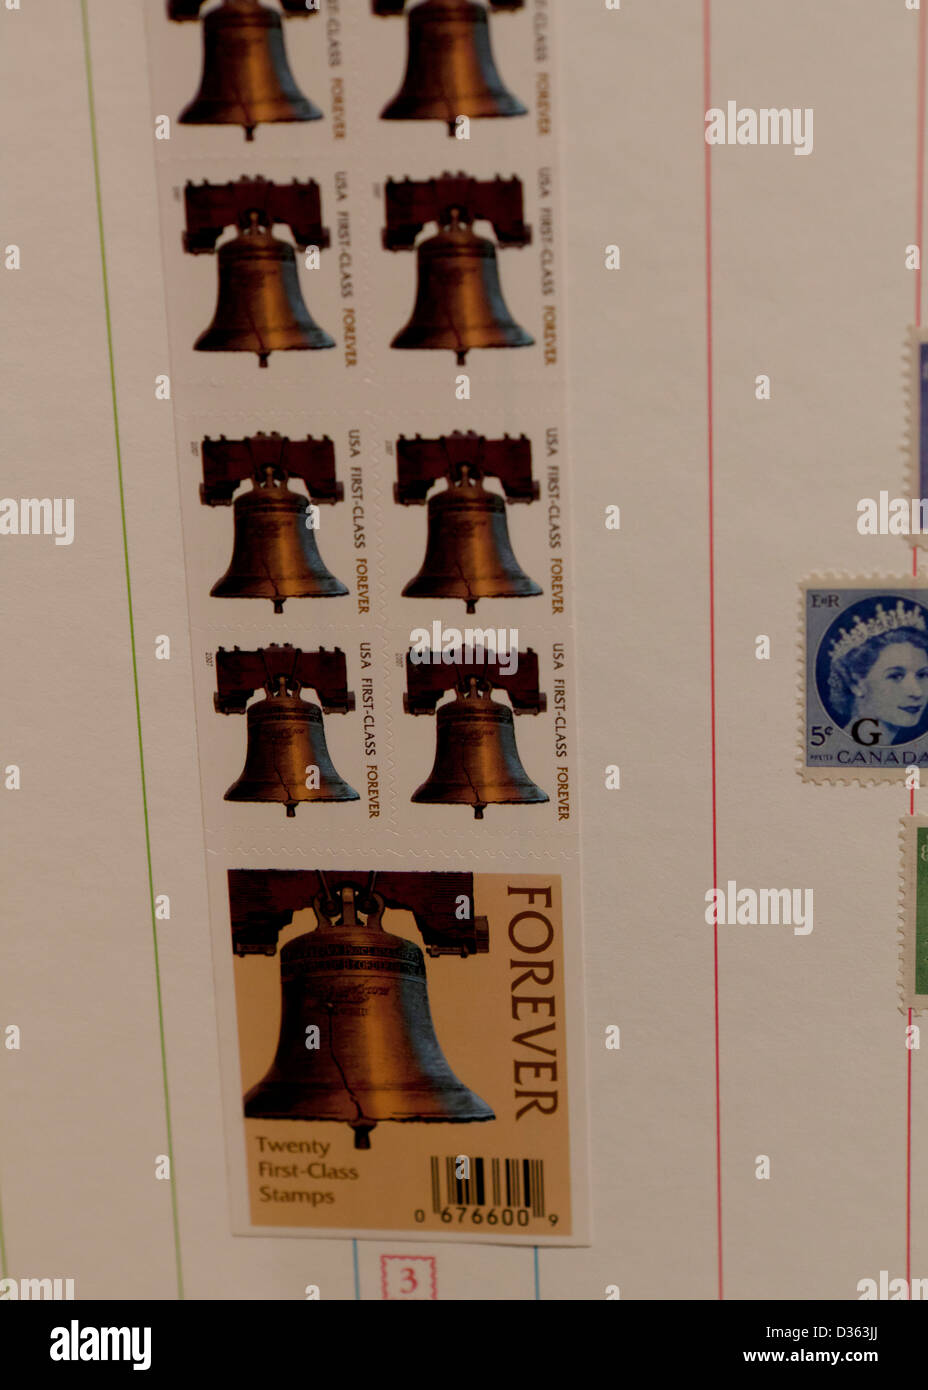 Forever stamp booklet - Stock Image